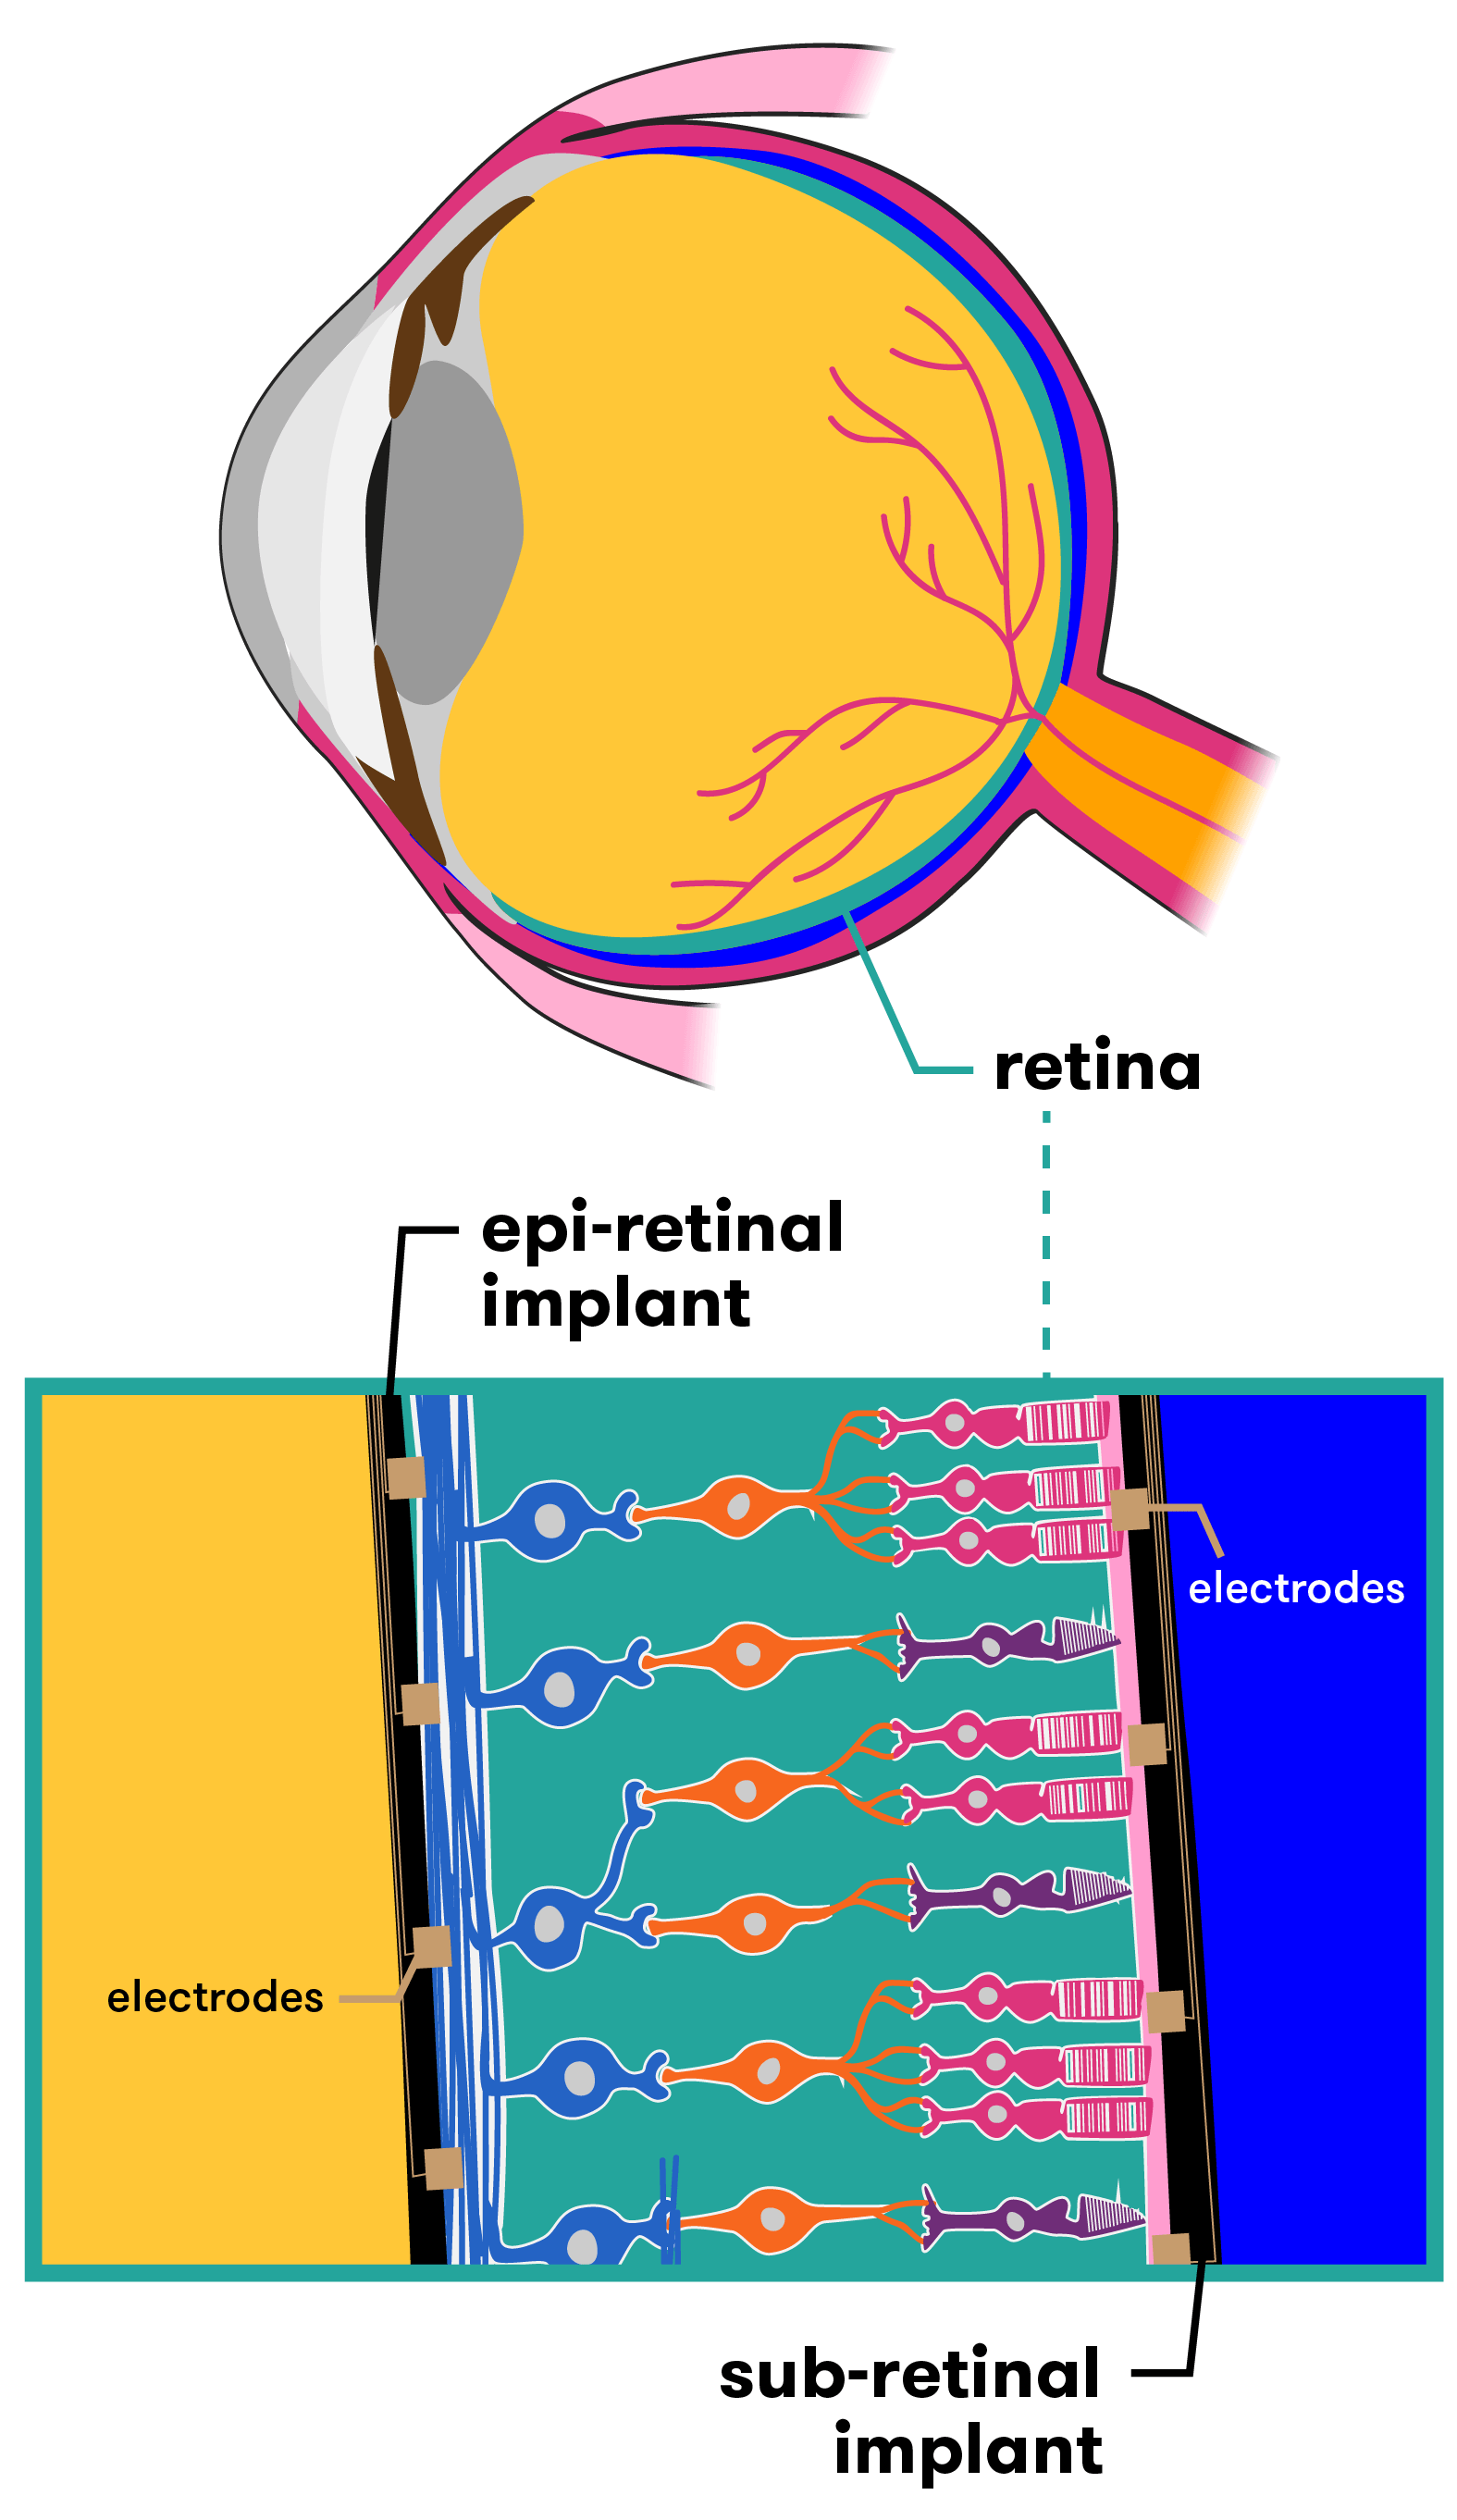 Epiretinal implants are placed in front of the retina; subretinal implants are placed at the back.